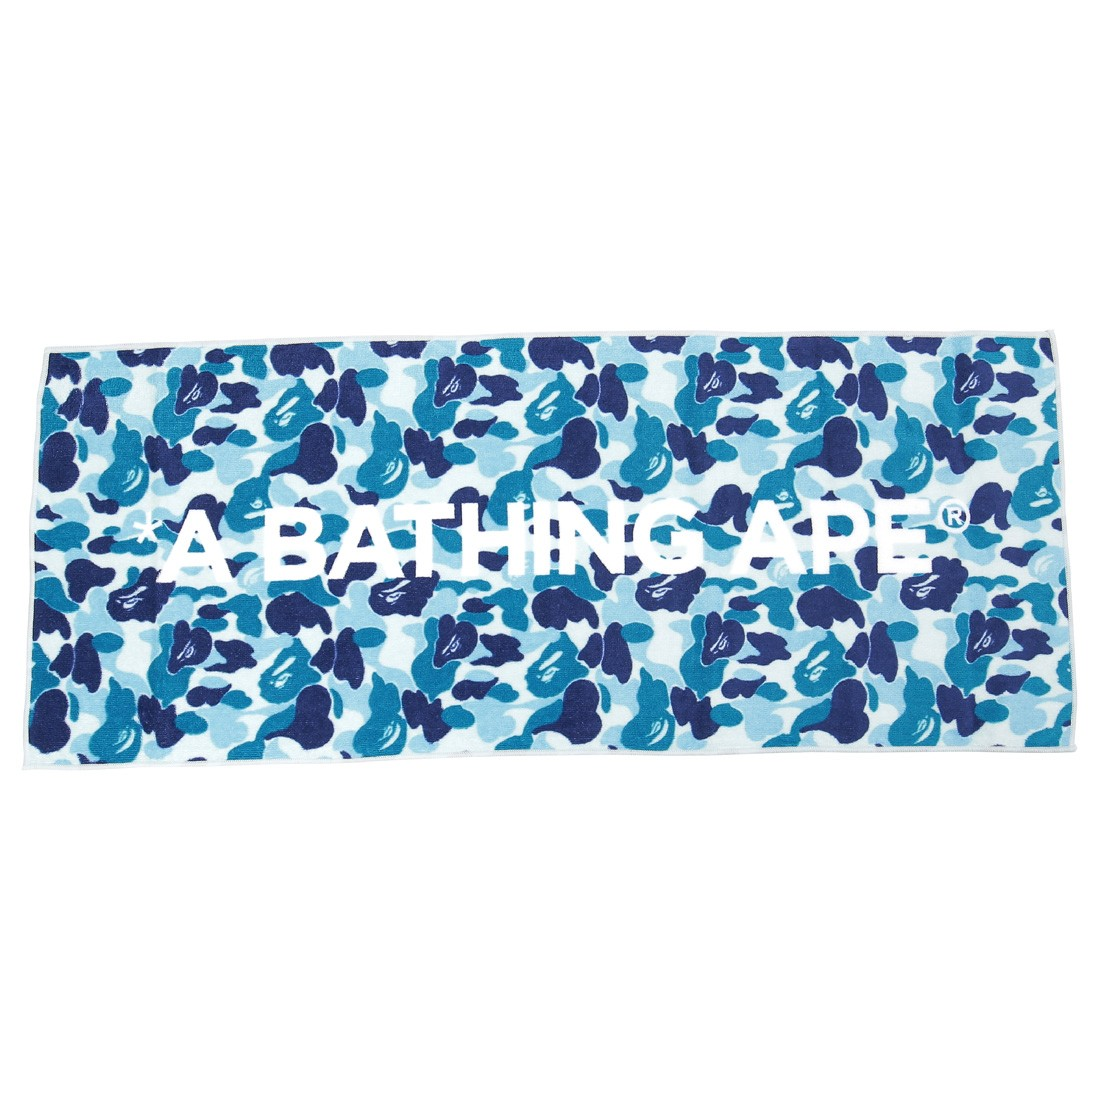 A Bathing Ape ABC Camo Sport Towel (blue)